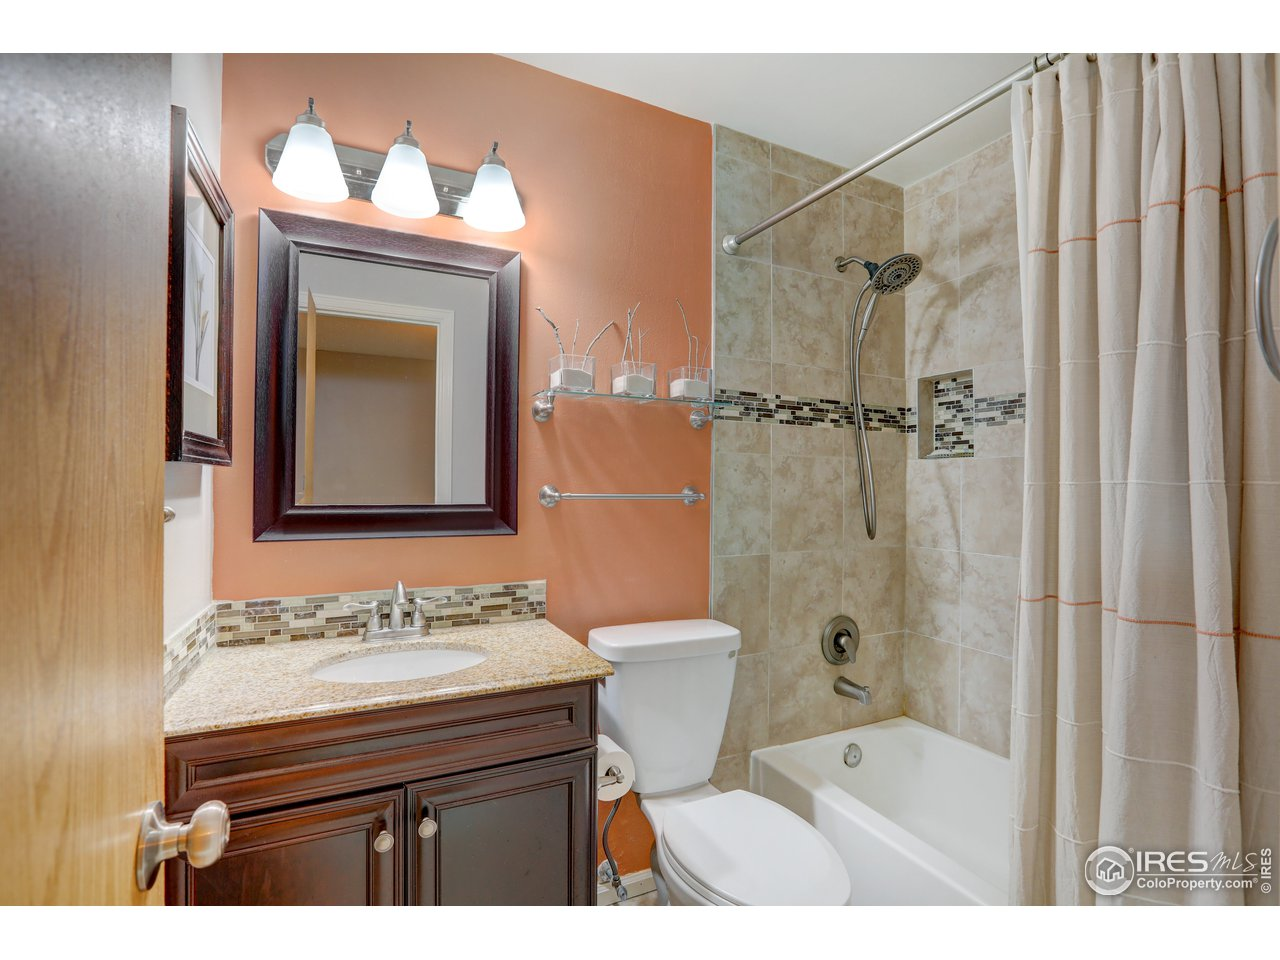 upgraded Hall bath with tile floor, under mount sink and stylish tile tub surround